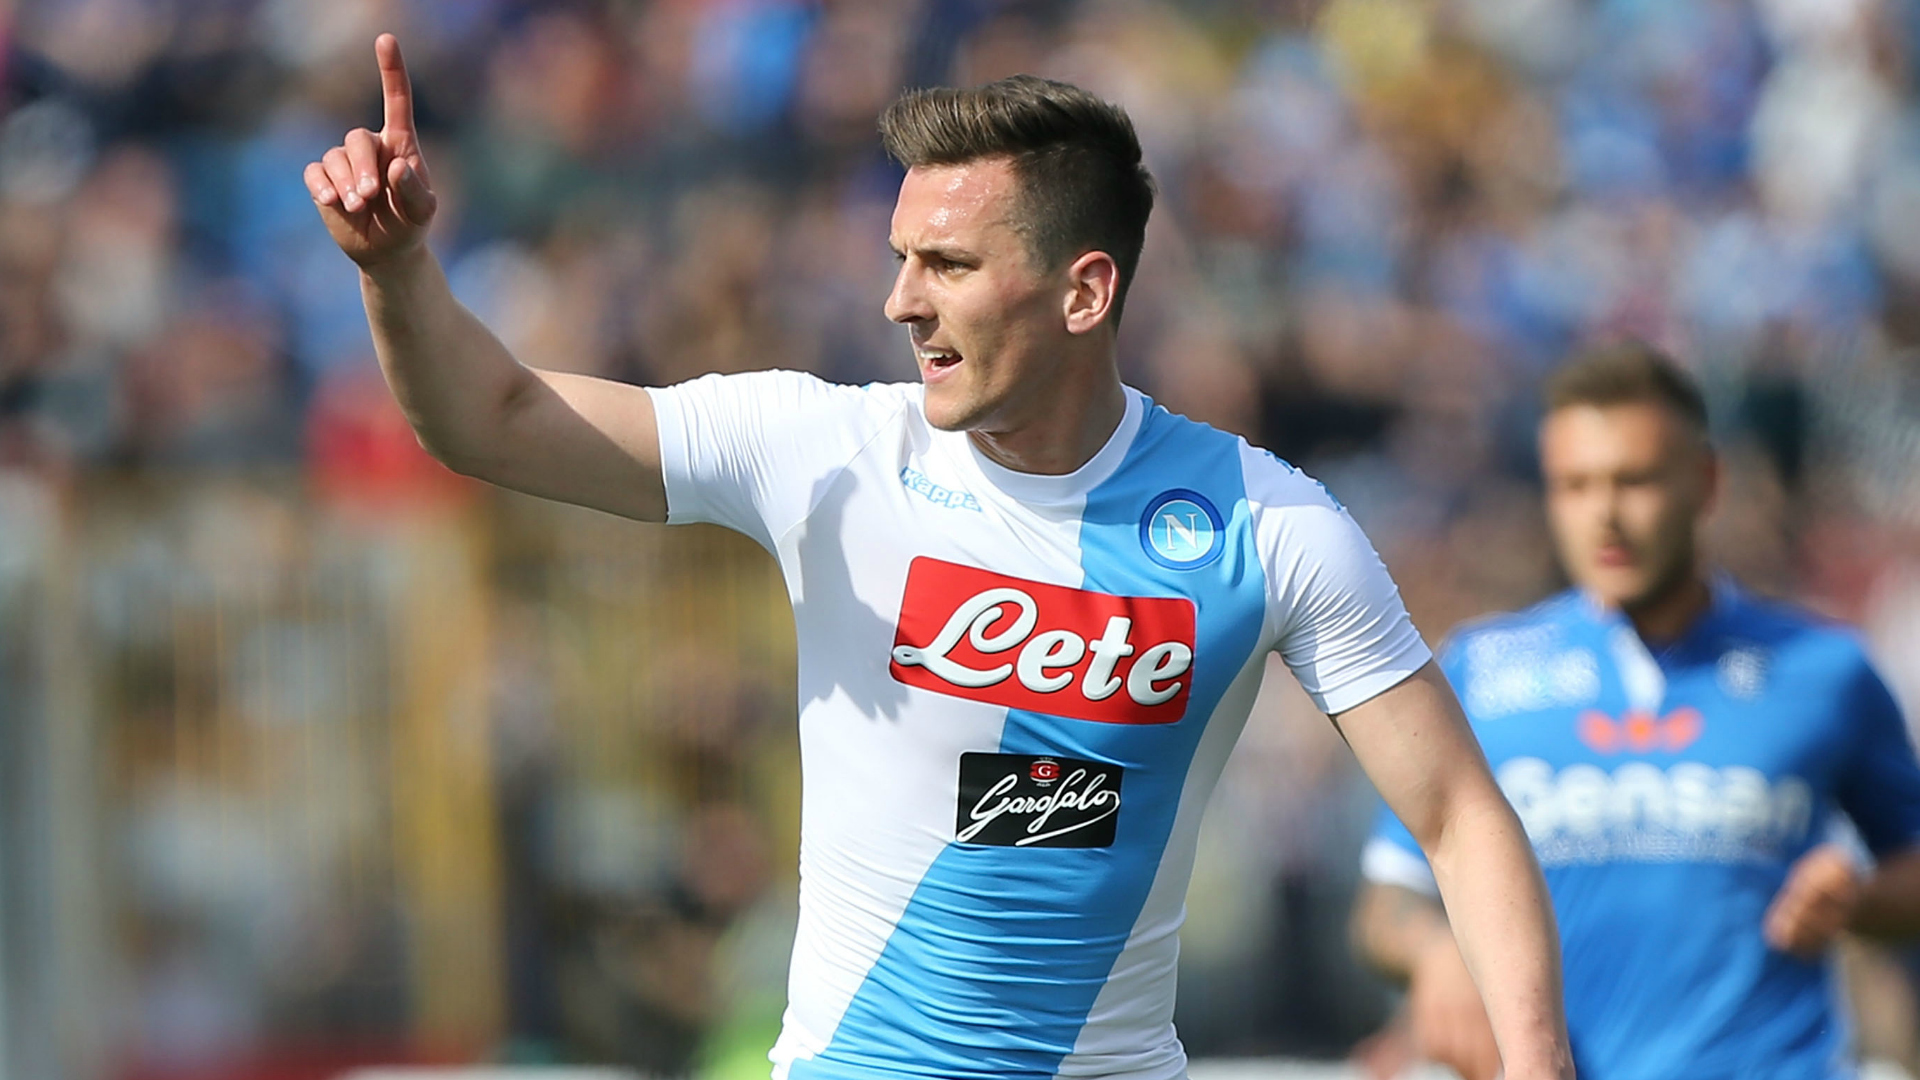 https://images.performgroup.com/di/library/GOAL/48/17/arkadiusz-milik-napoli-serie-a-2016-17_16zqu5zy66lpw1ao98cjmeeed0.jpg